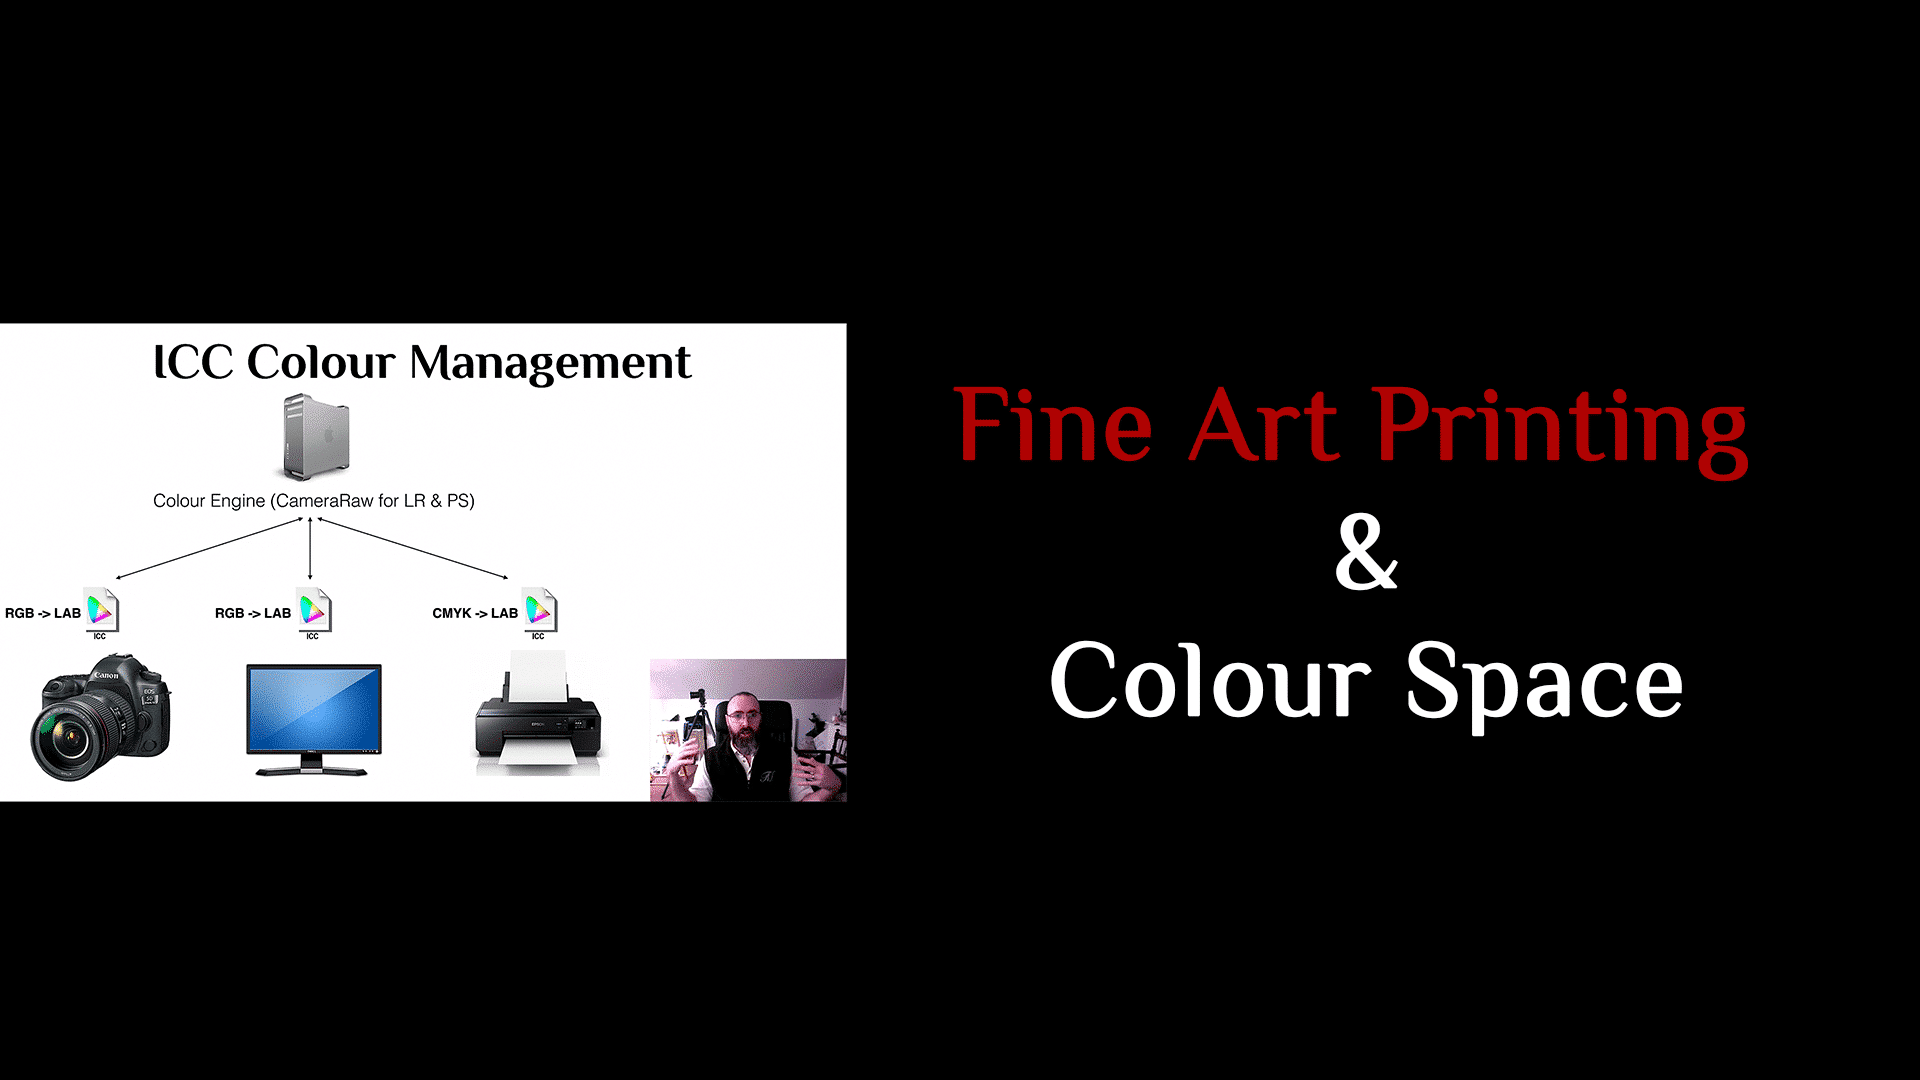 Fine Art Printing & Colour Space